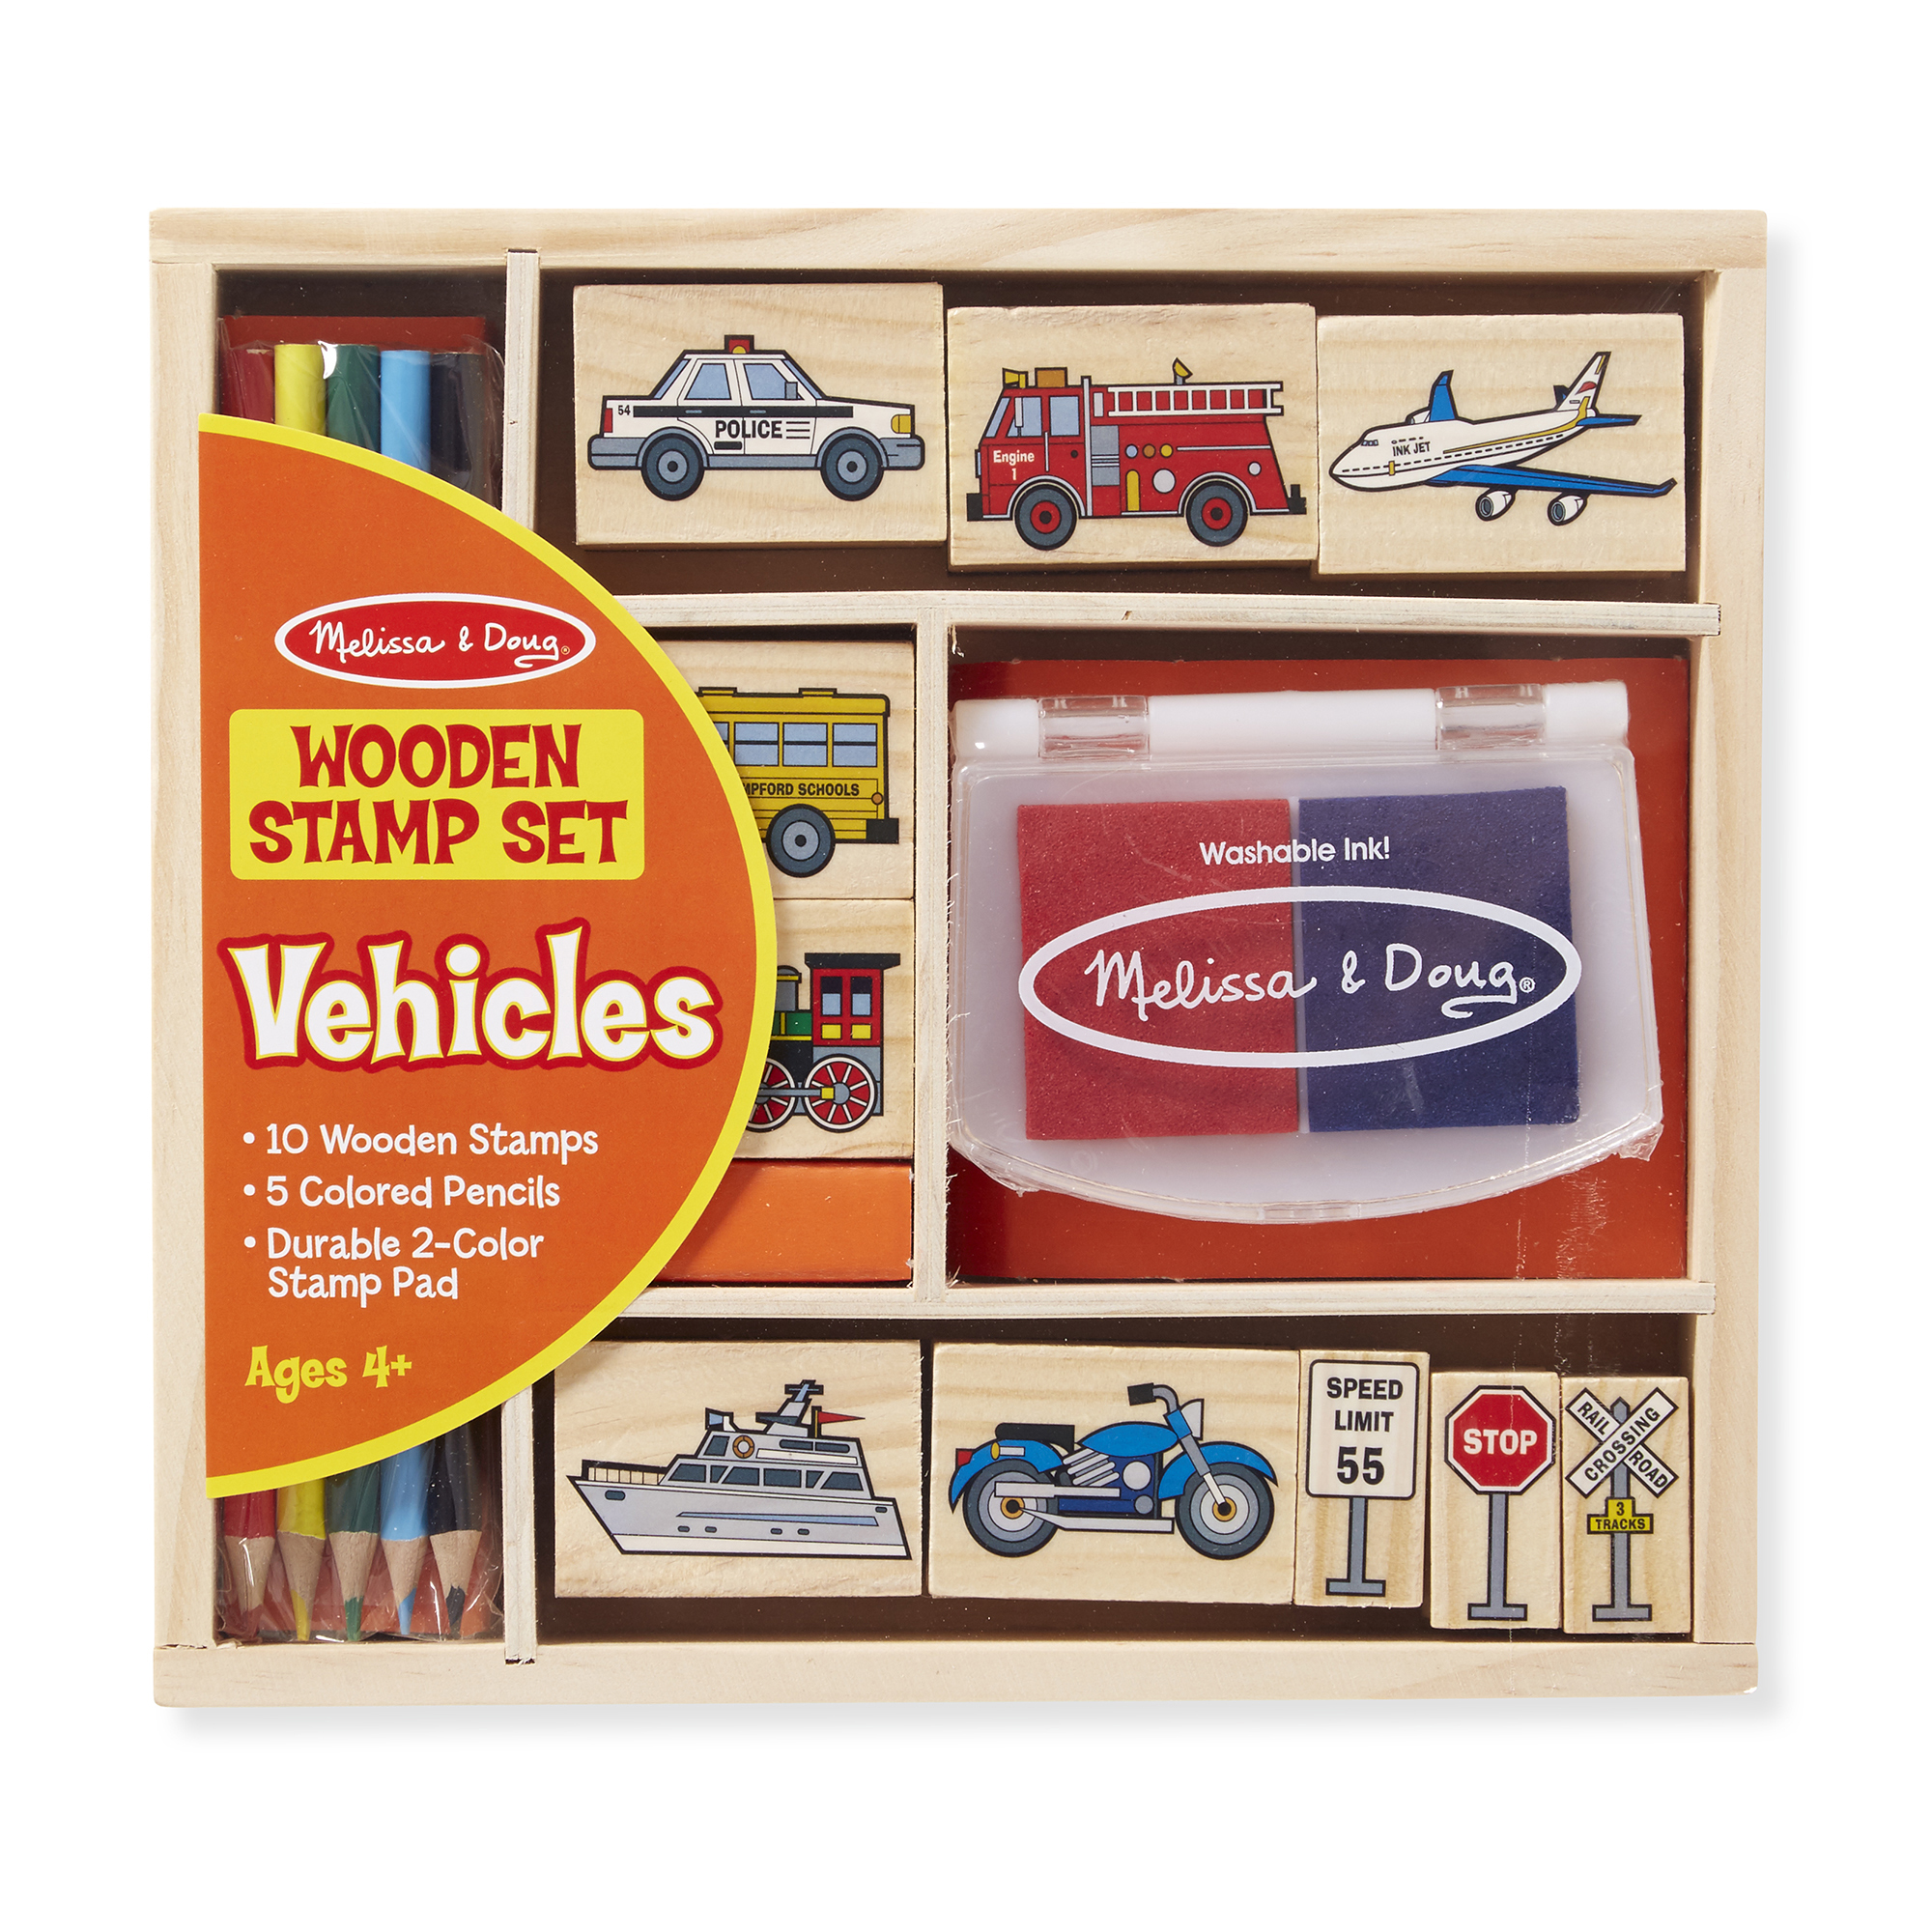 Wooden Stamp Set  Vehicles